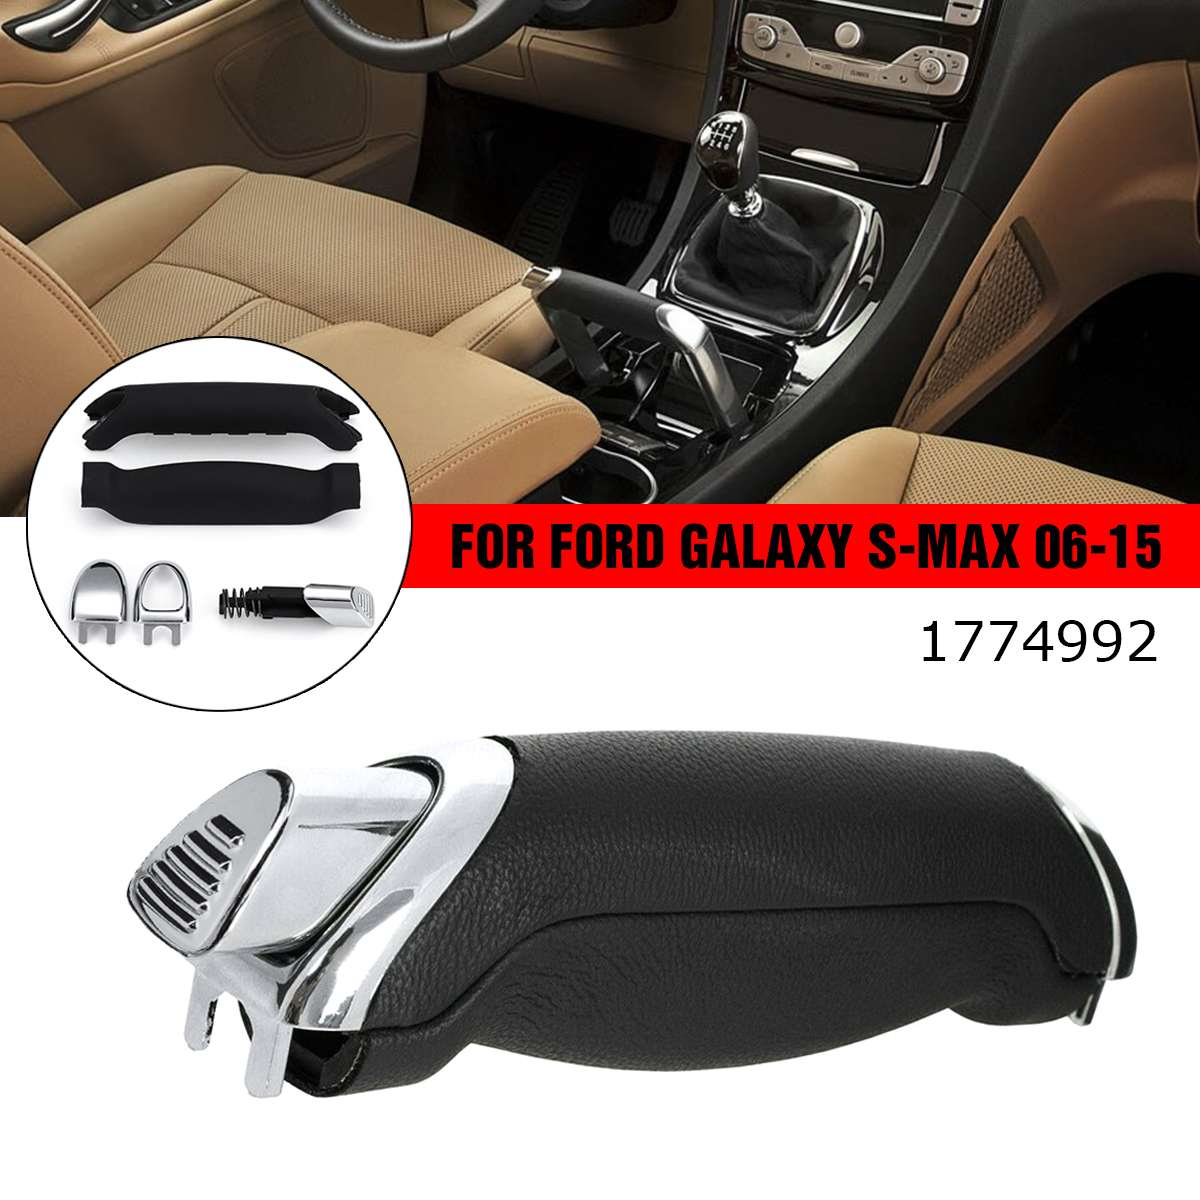 1 SET Car Easy Install Parking Handbrake Stop Handle Lever Kit For Ford For Galaxy For S-MAX 2006-2015 1774992 Car Accessories